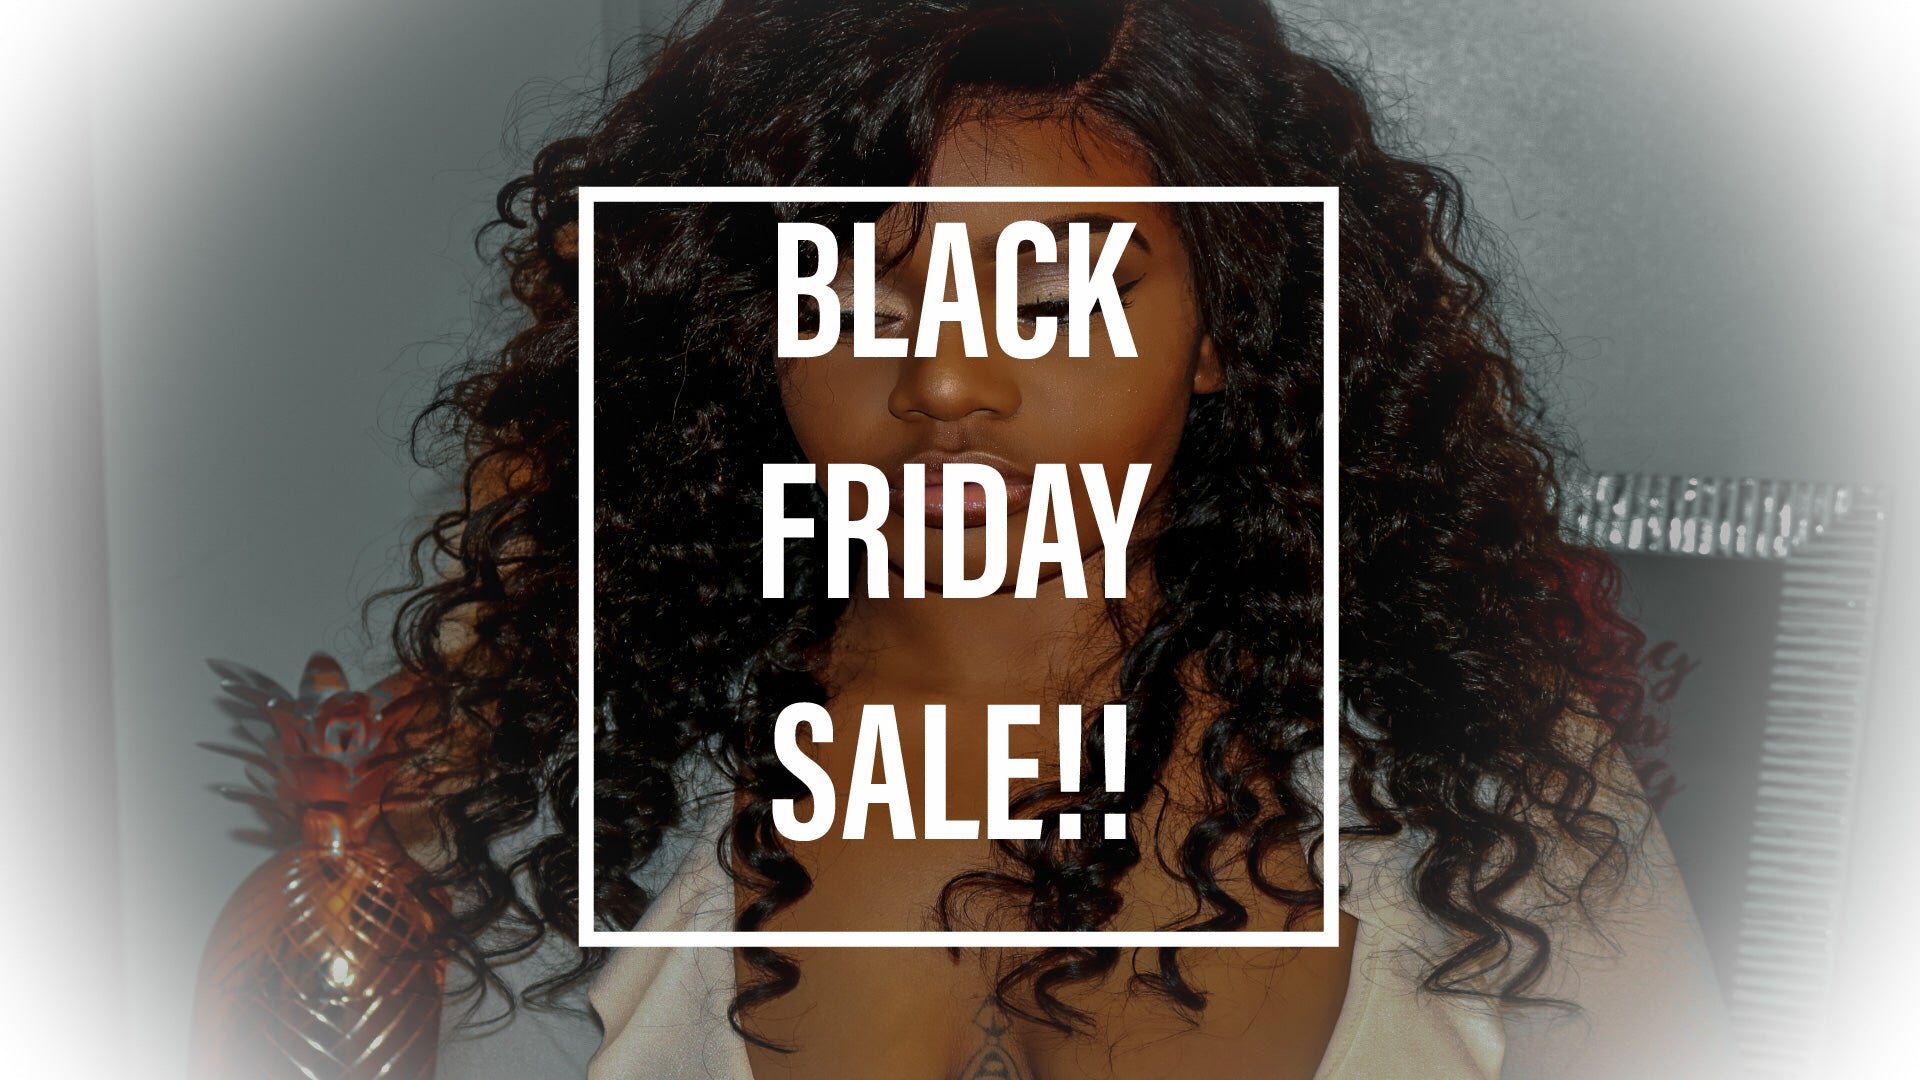 Black Friday Cyber Monday SALES!!